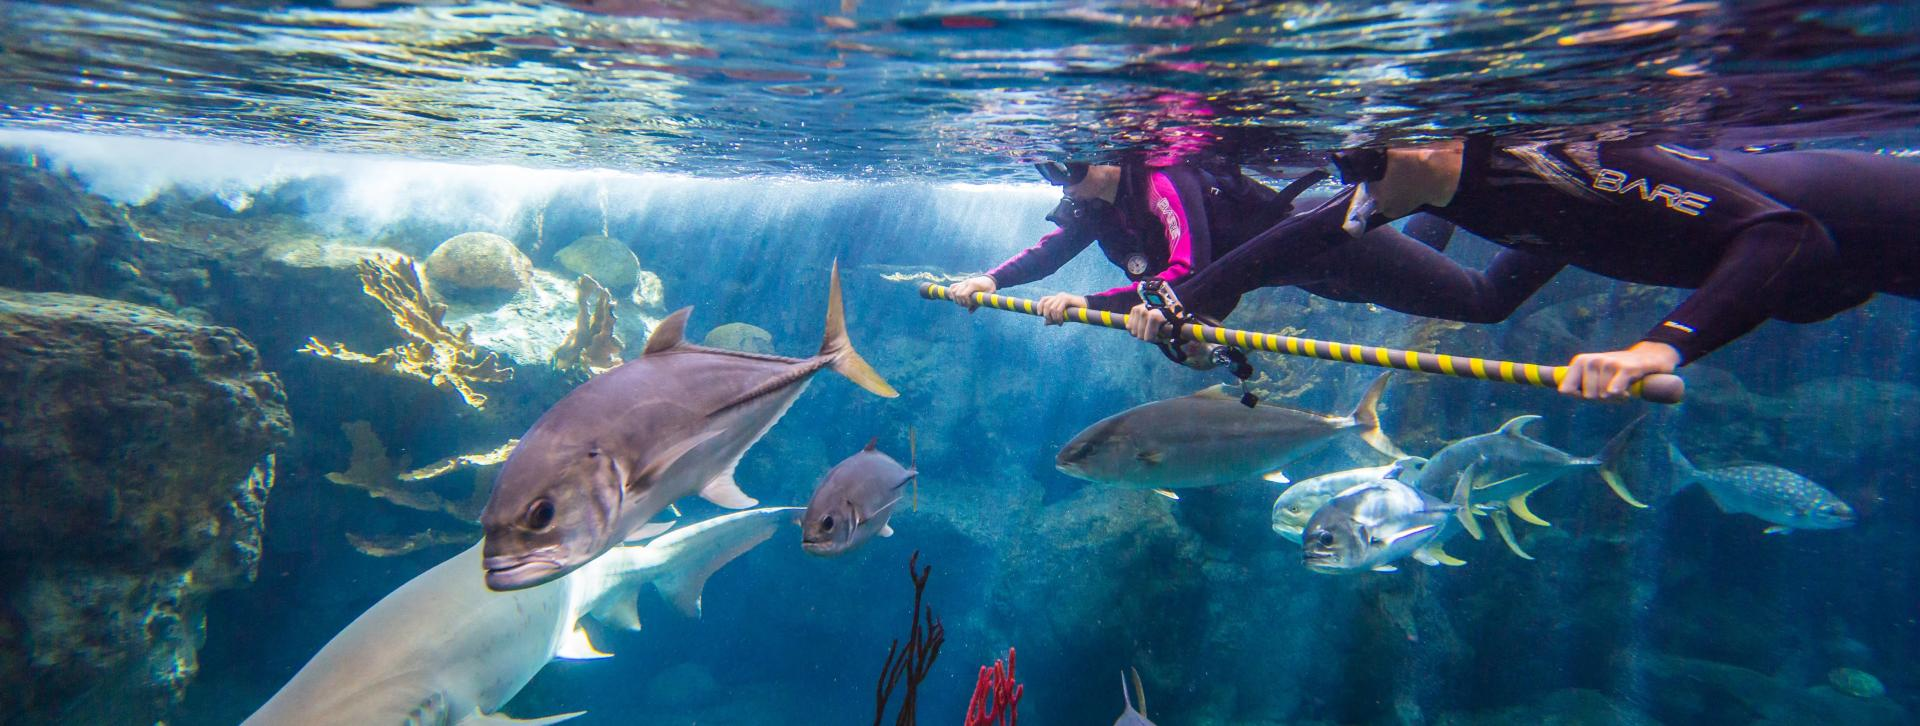 Things To Do In Tampa Florida Attractions Family Fun More